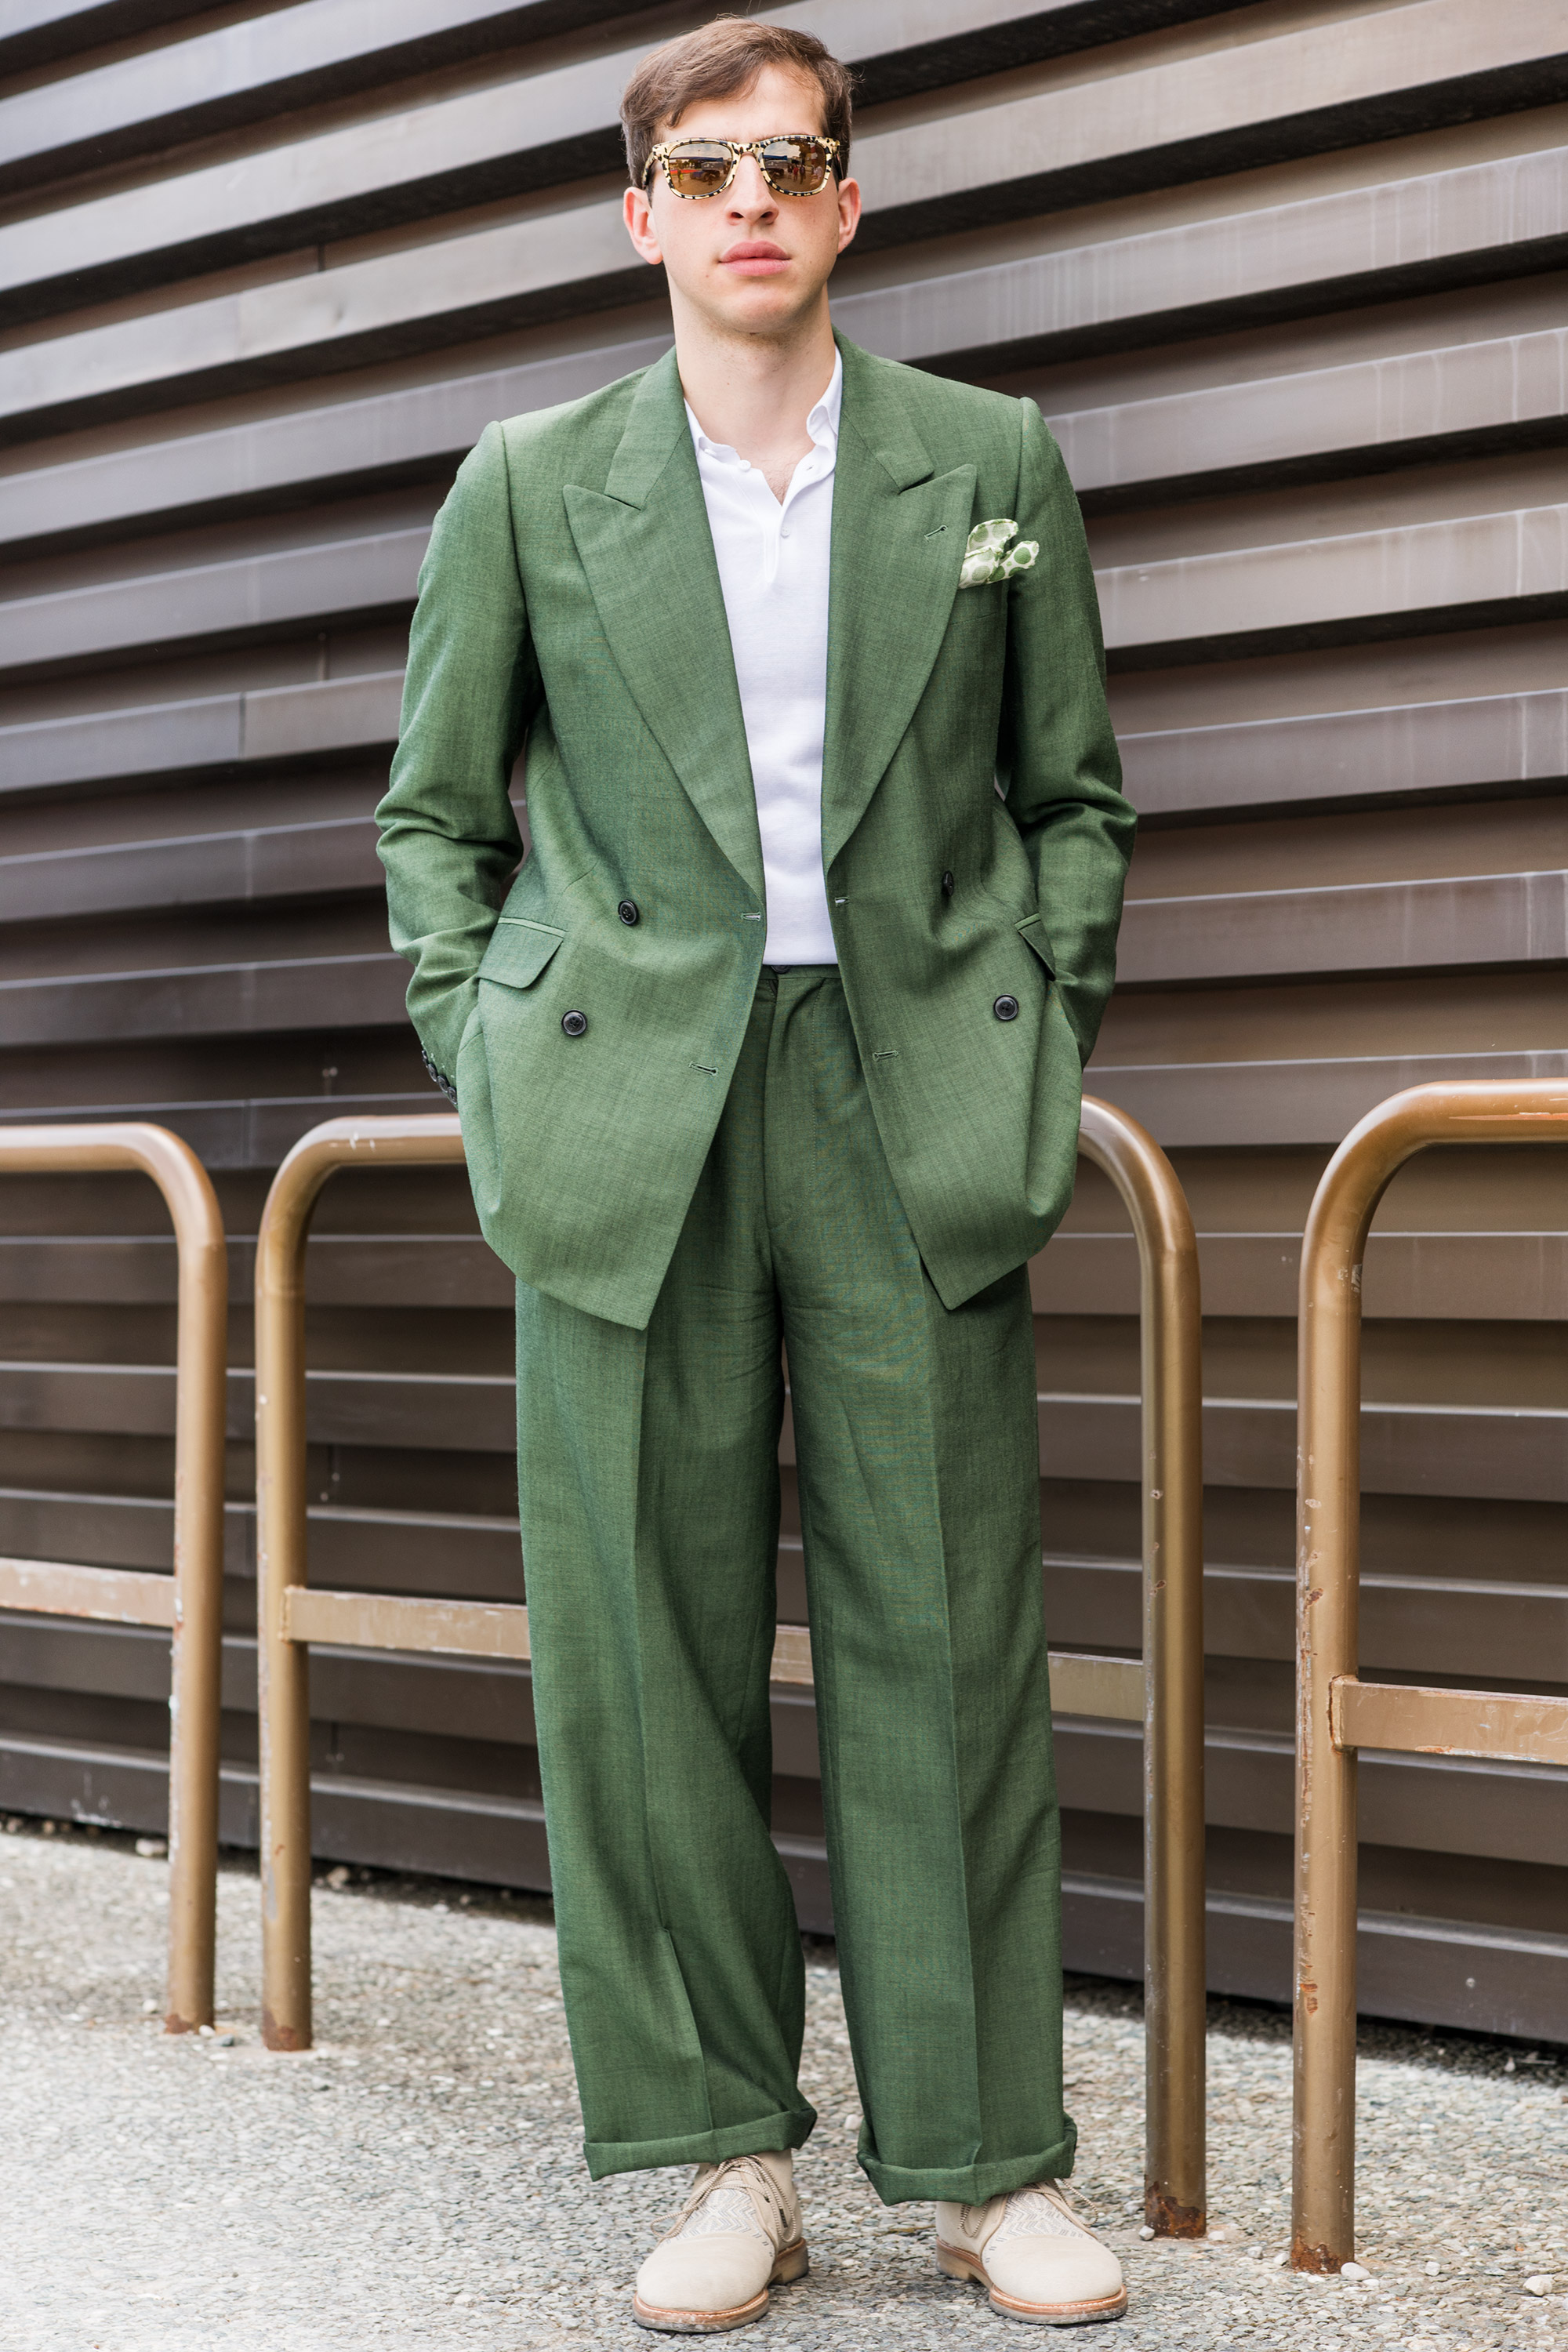 Konstantin Sunglasses: Carrera x Jimmy Choo Suit: Dries Van Notten Polo: COS Pocket square: LBM 1911 Shoes: Missoni  Cheapest piece: my polo Oldest piece: the suit from 3 years ago  Inspiration: I'm celebrating Pitti Uomo's color theme today!(为了庆祝Pitti Uomo的色彩主题!)